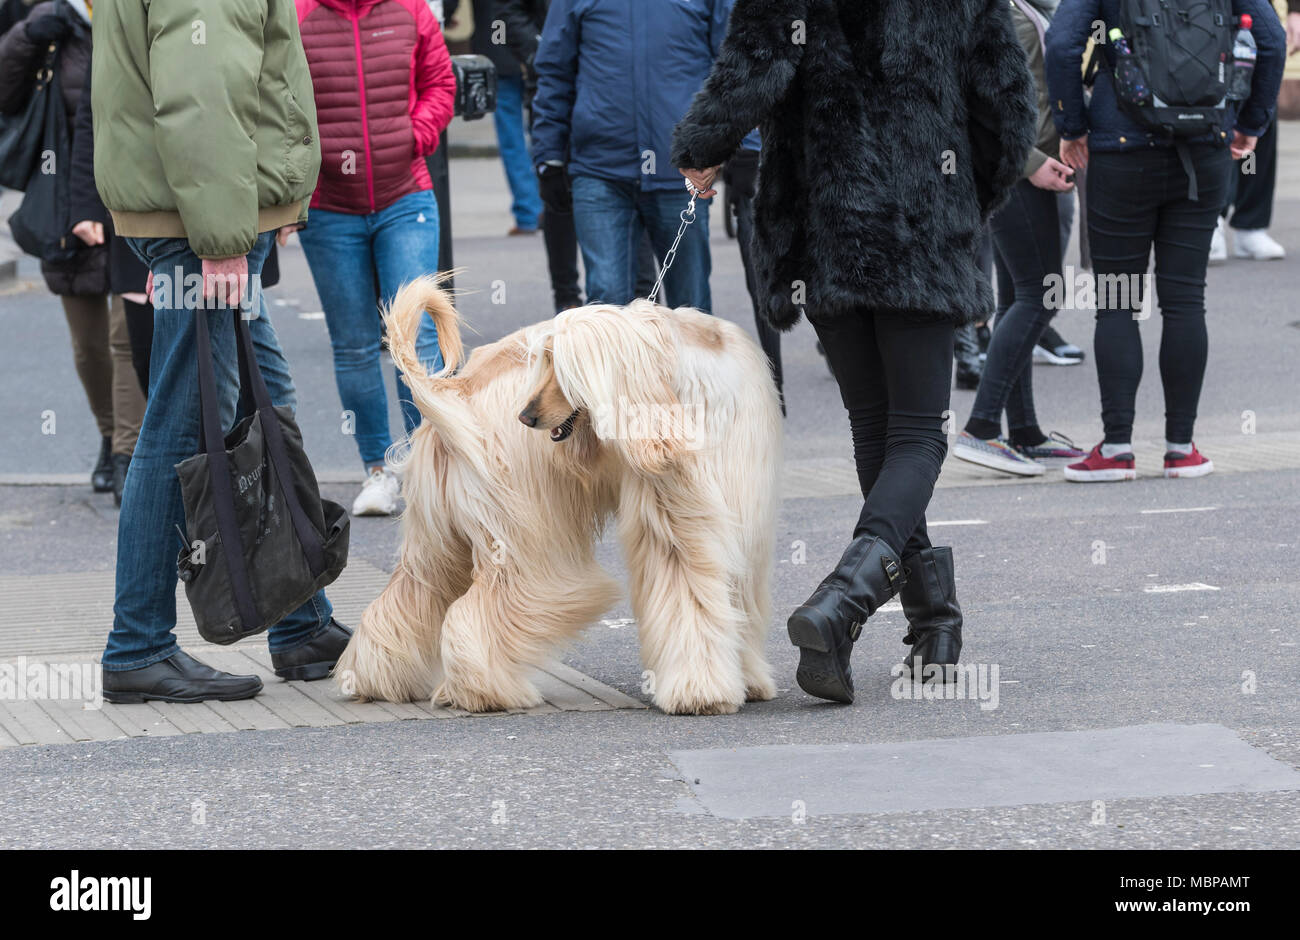 Afghan Hound dog being walked on a lead across a road in a town in the UK. - Stock Image